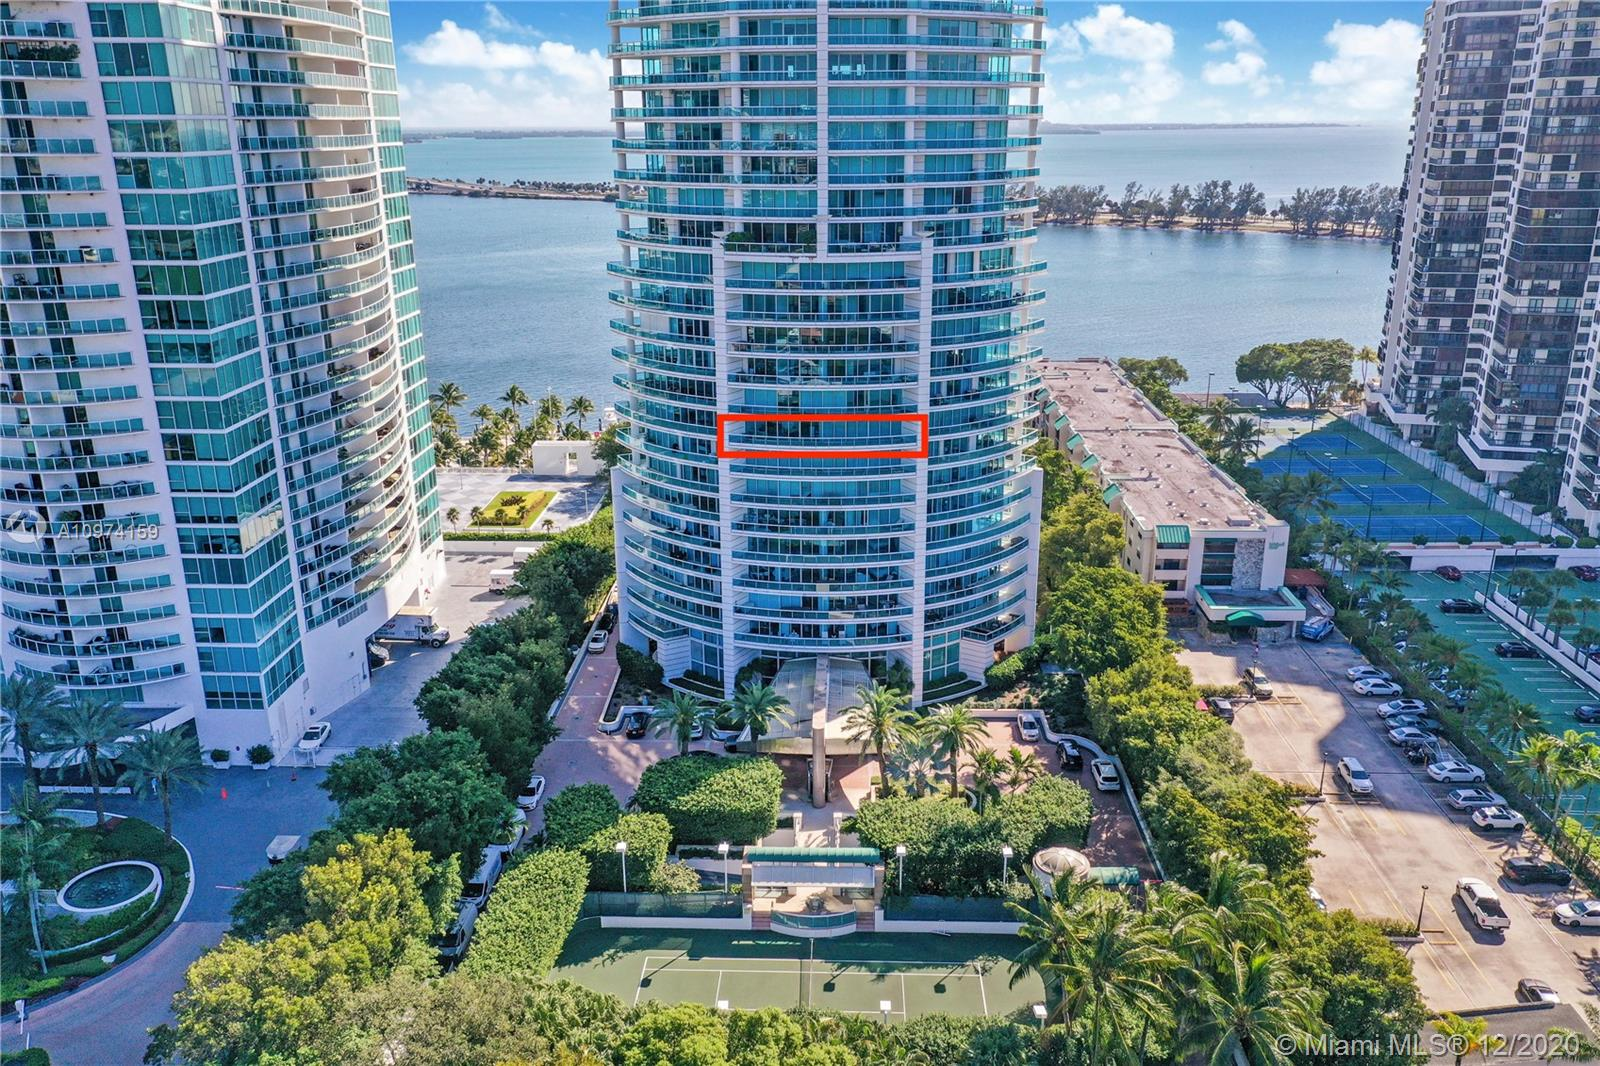 Opportunity to live in one of Brickell's most Iconic buildings developed by Ugo Columbo and designed by Miami-based architecture firm Revuelta Vega Leon Architects. This unique unit faces west for the most spectacular sunset views, boasts a 700sq ft wraparound balcony, floor-to-ceiling glass windows, two full baths and a den which can easily be converted to a second bedroom. Priced to sell and has enormous potential.